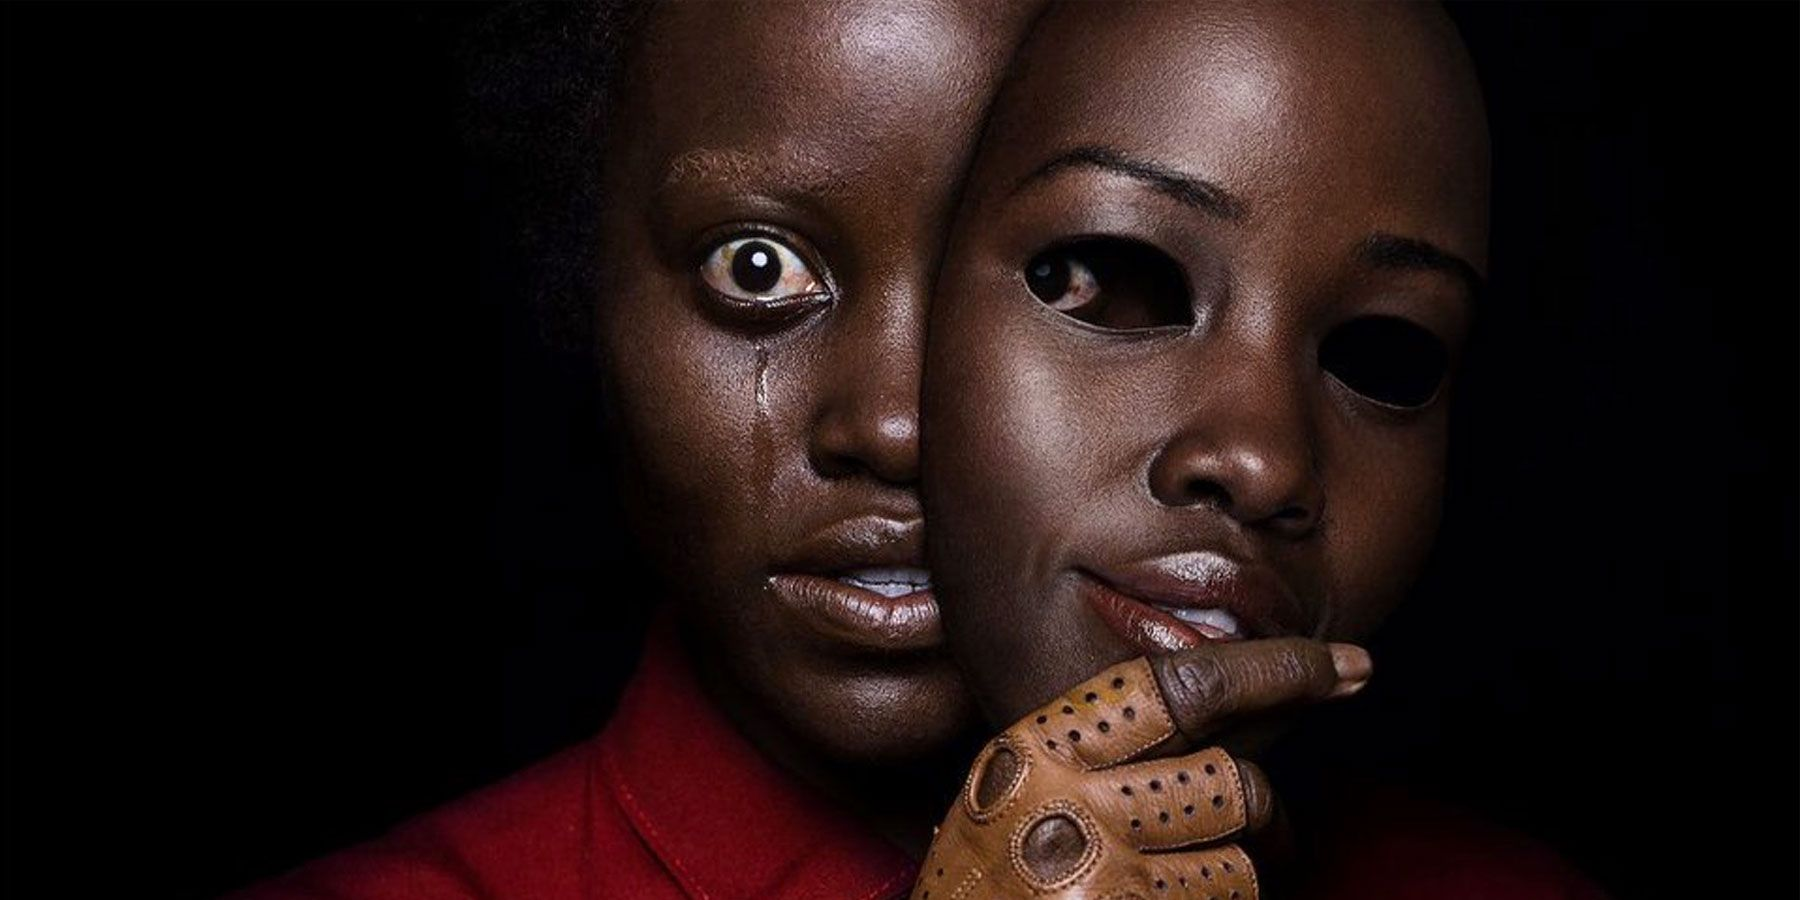 Jordan Peele's Us More Than Doubled Get Out's Opening Weekend